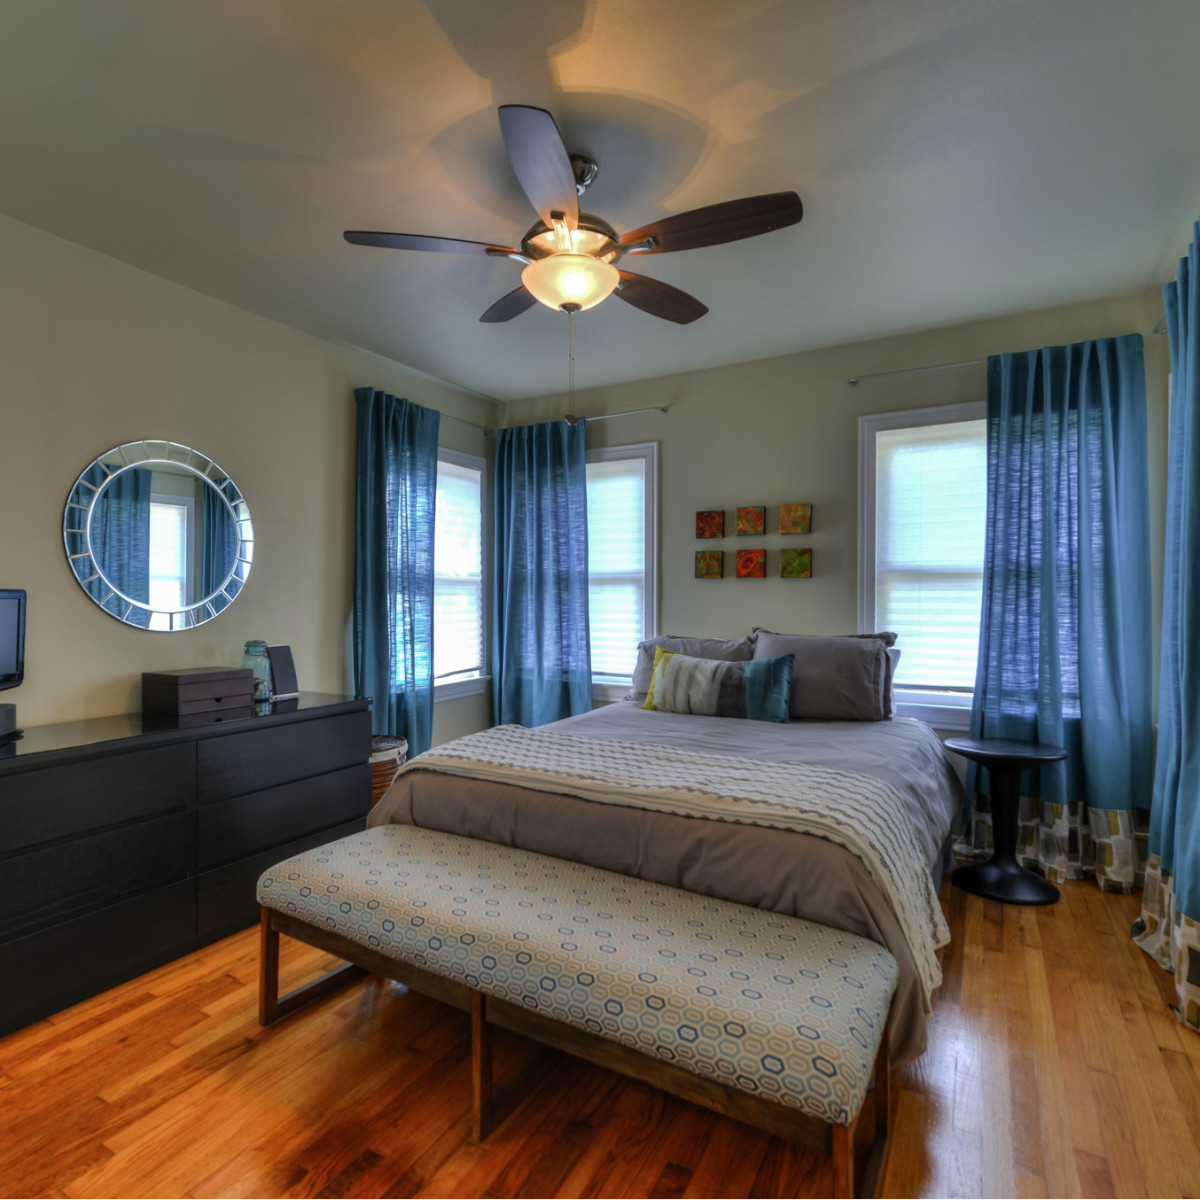 266 Claywell San Antonio house for sale bedroom